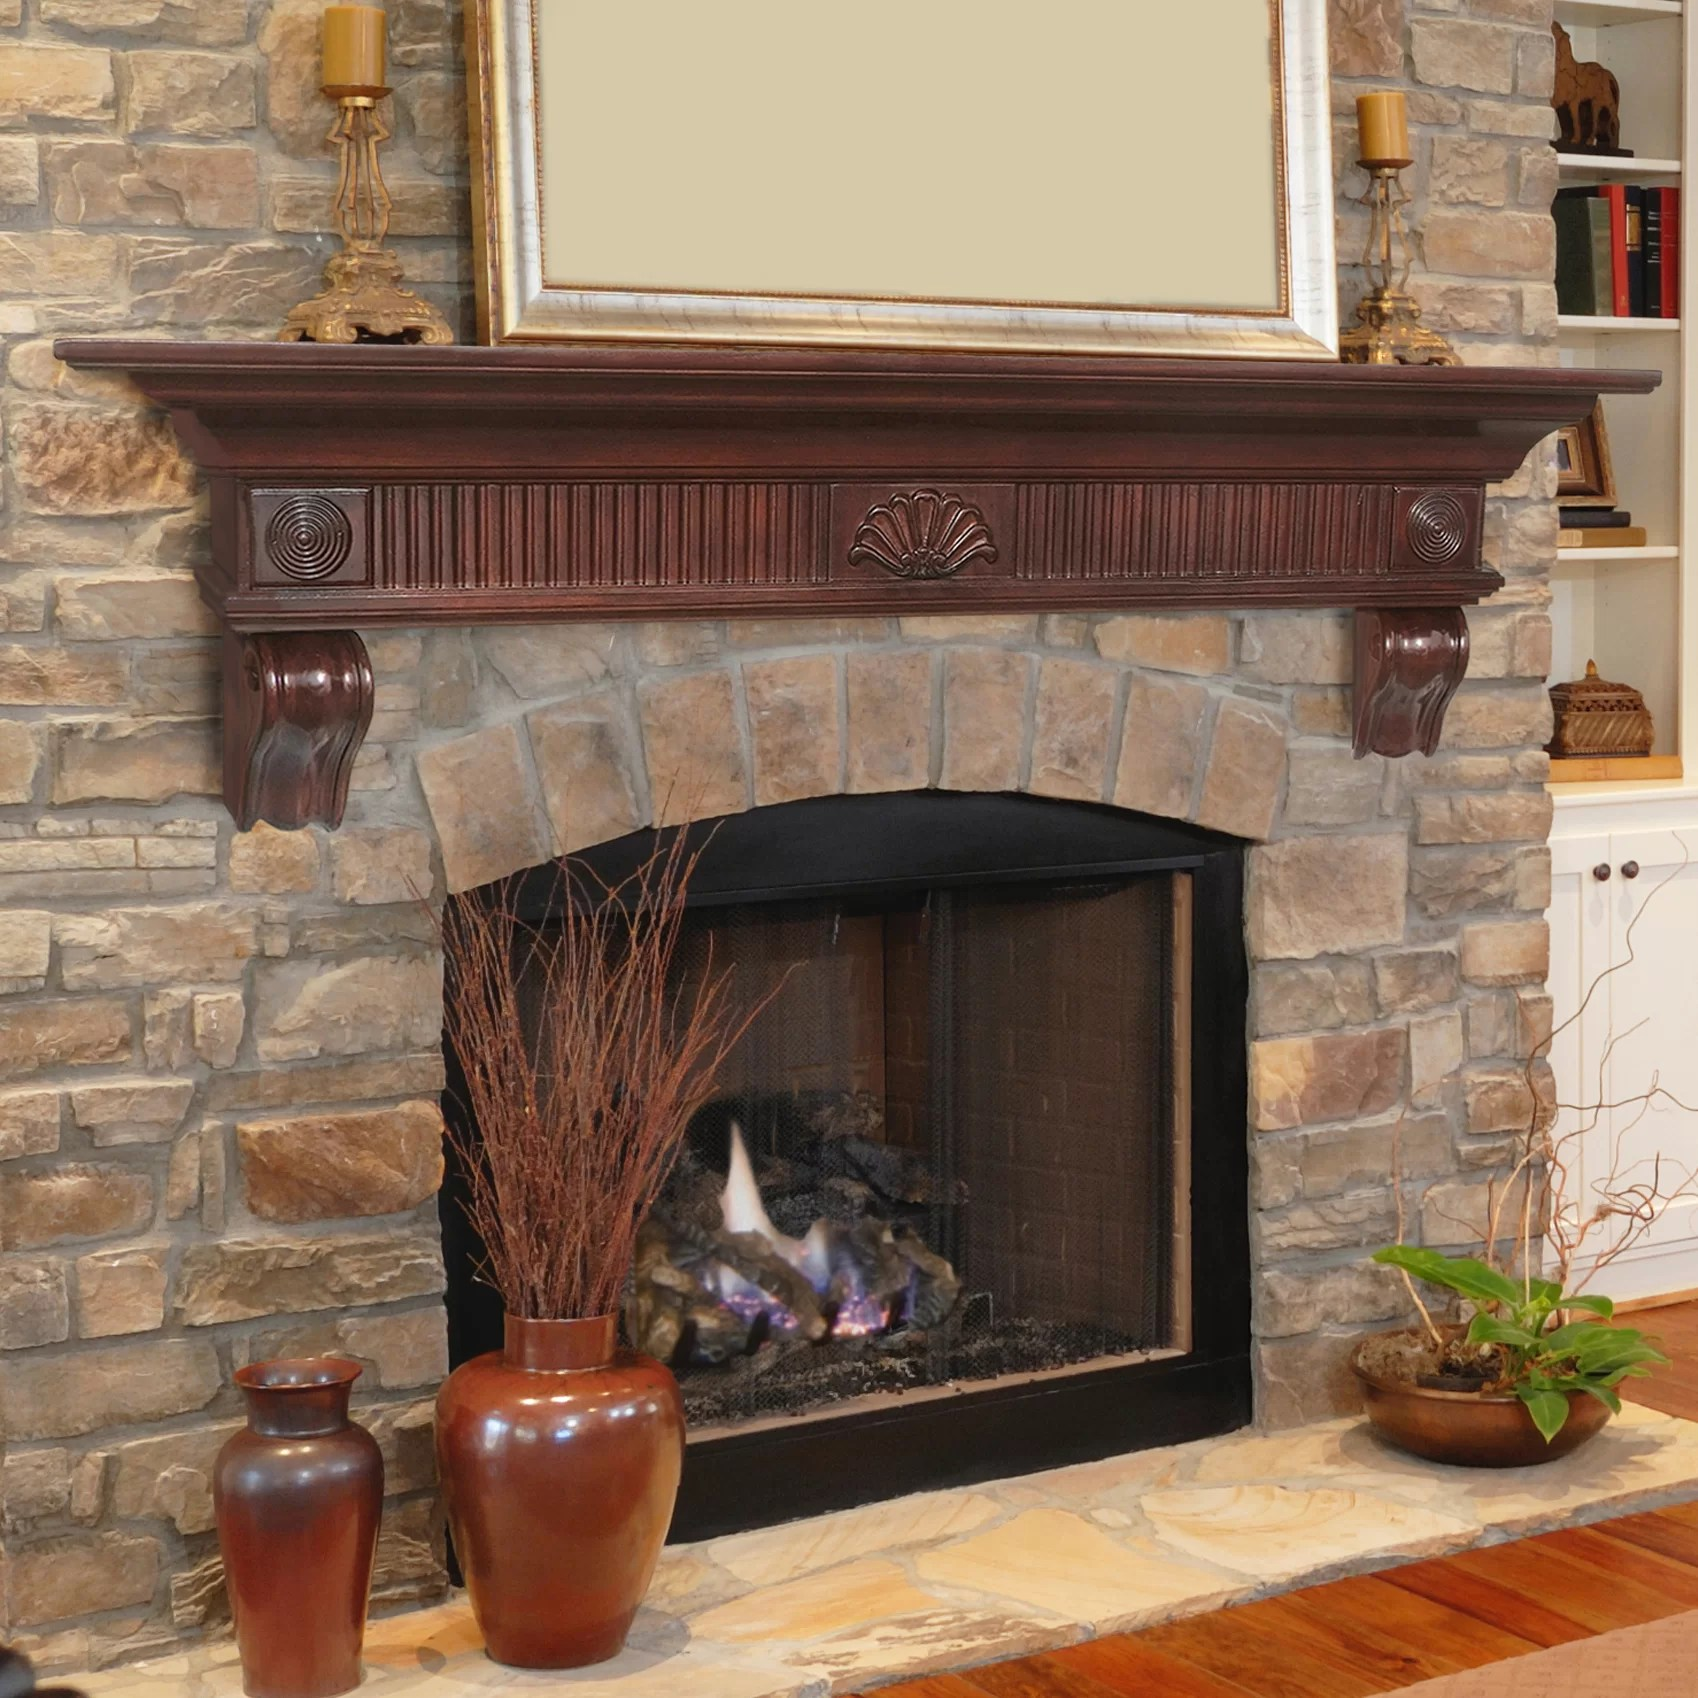 Brick Fireplace Wood Mantel The Devonshire Fireplace Shelf Mantel